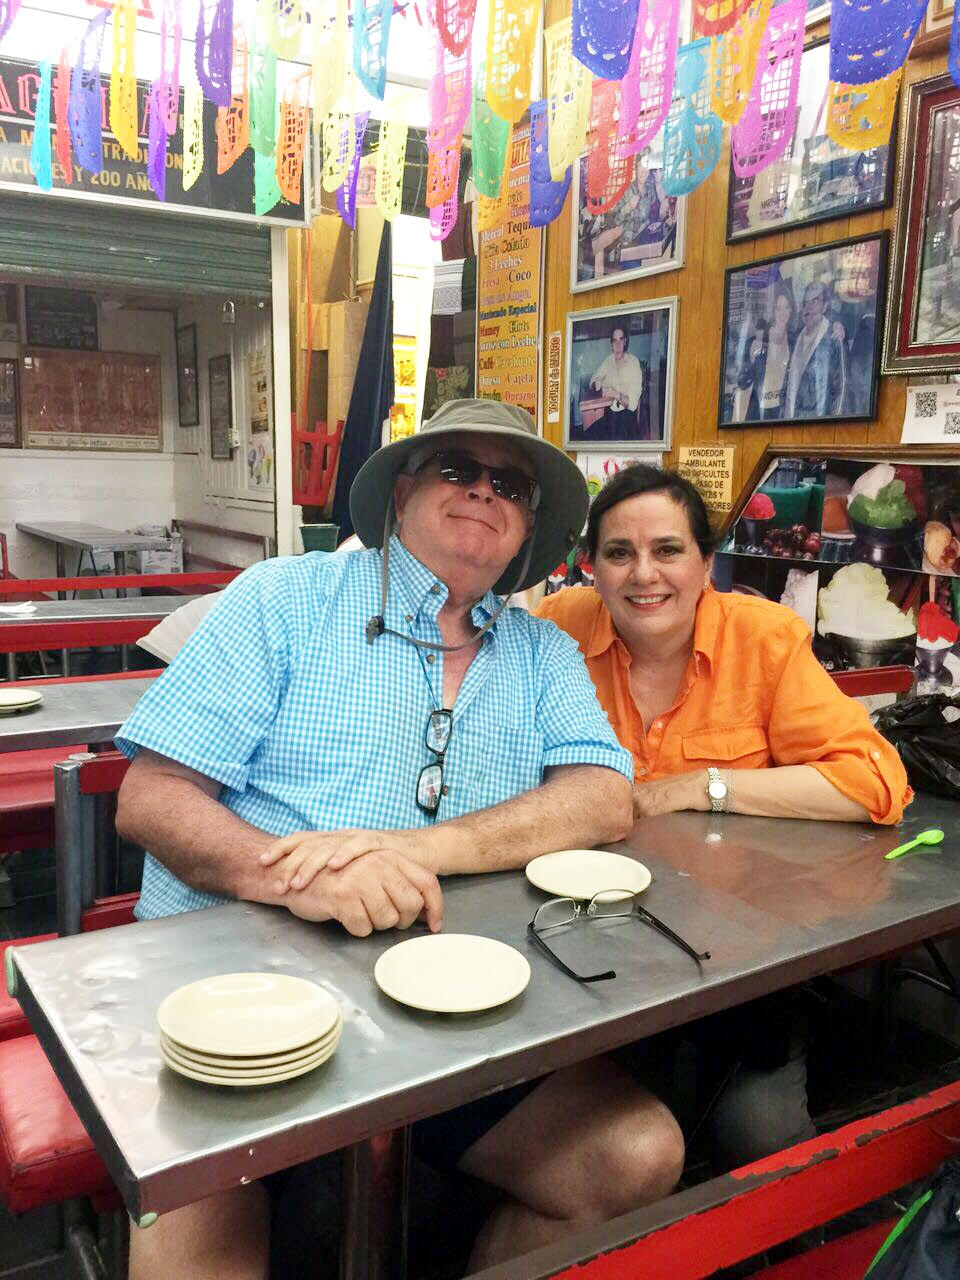 Luisa's parents Joaquin (l) and Luz Elena (r) enjoying the mercado in Oaxaca City.  (Photo Courtesy: mesachicparties.com)